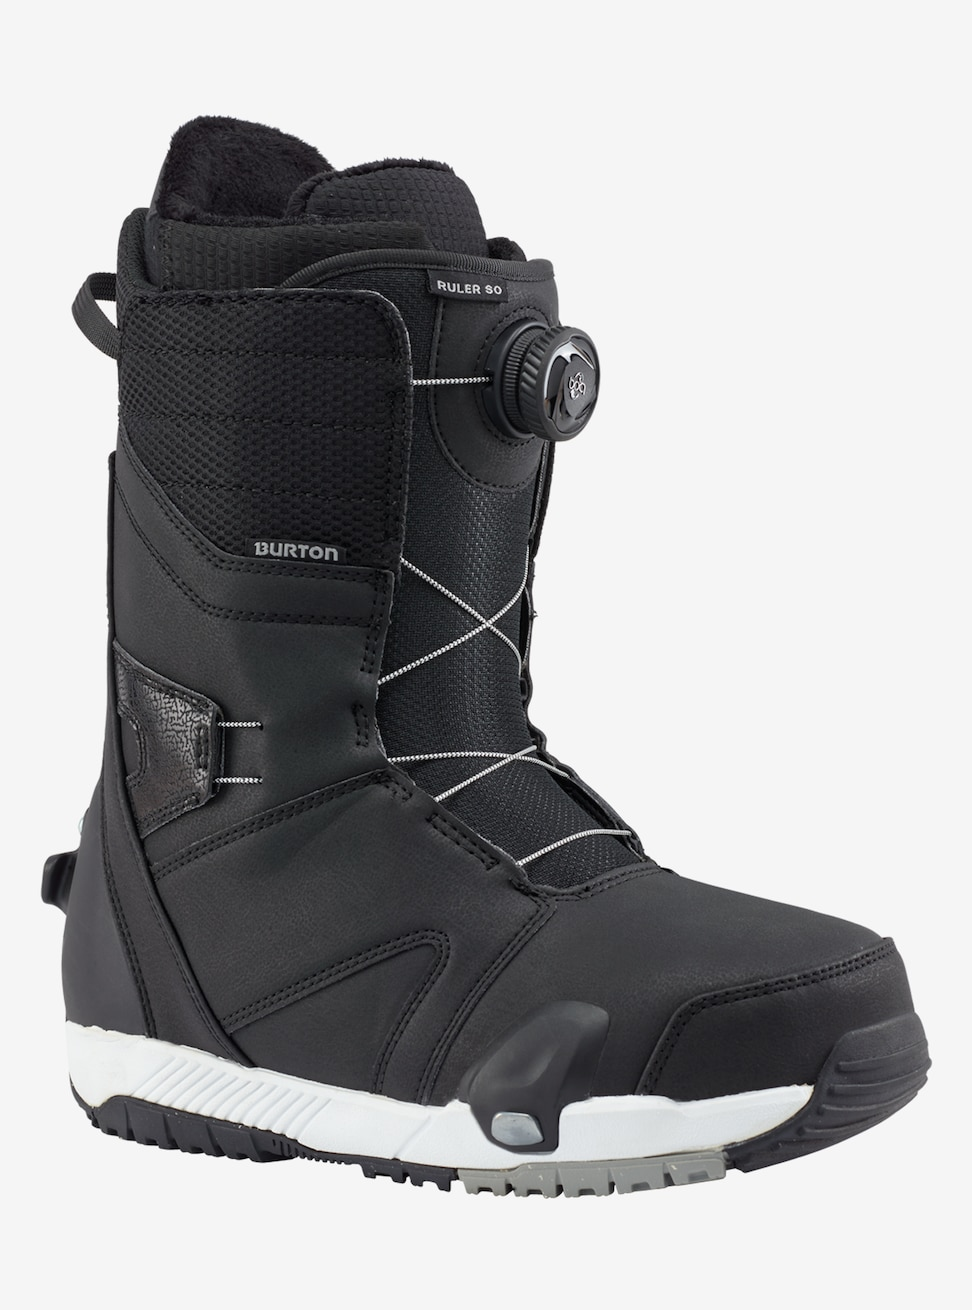 burton ruler snowboard boots review